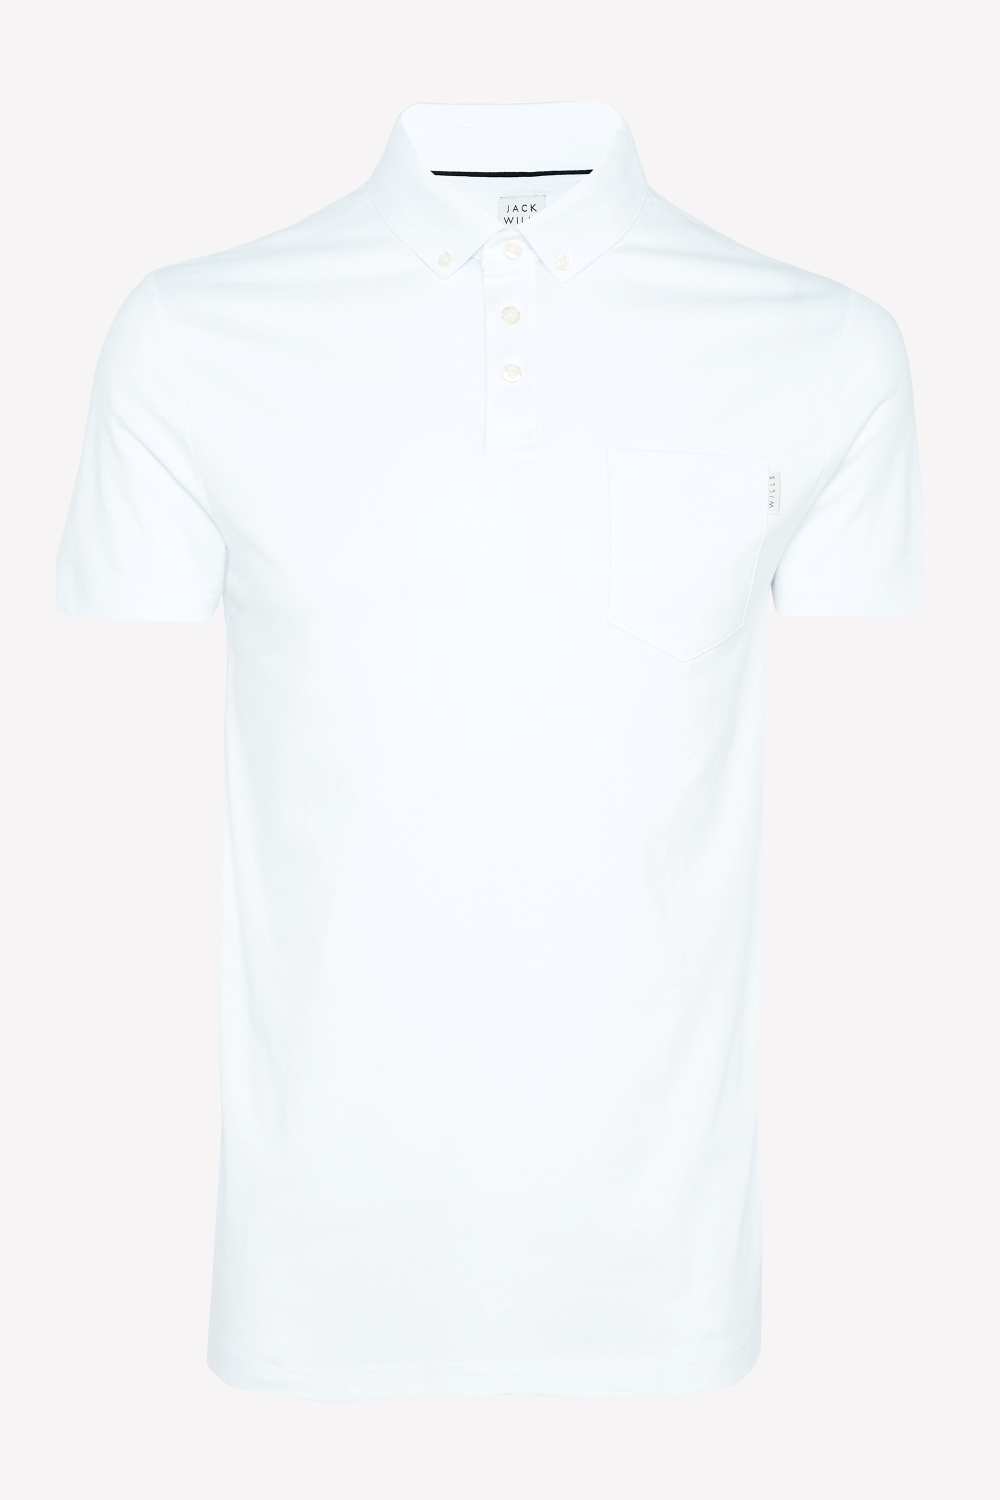 Jack Wills White ASTMOORE JERSEY POLO